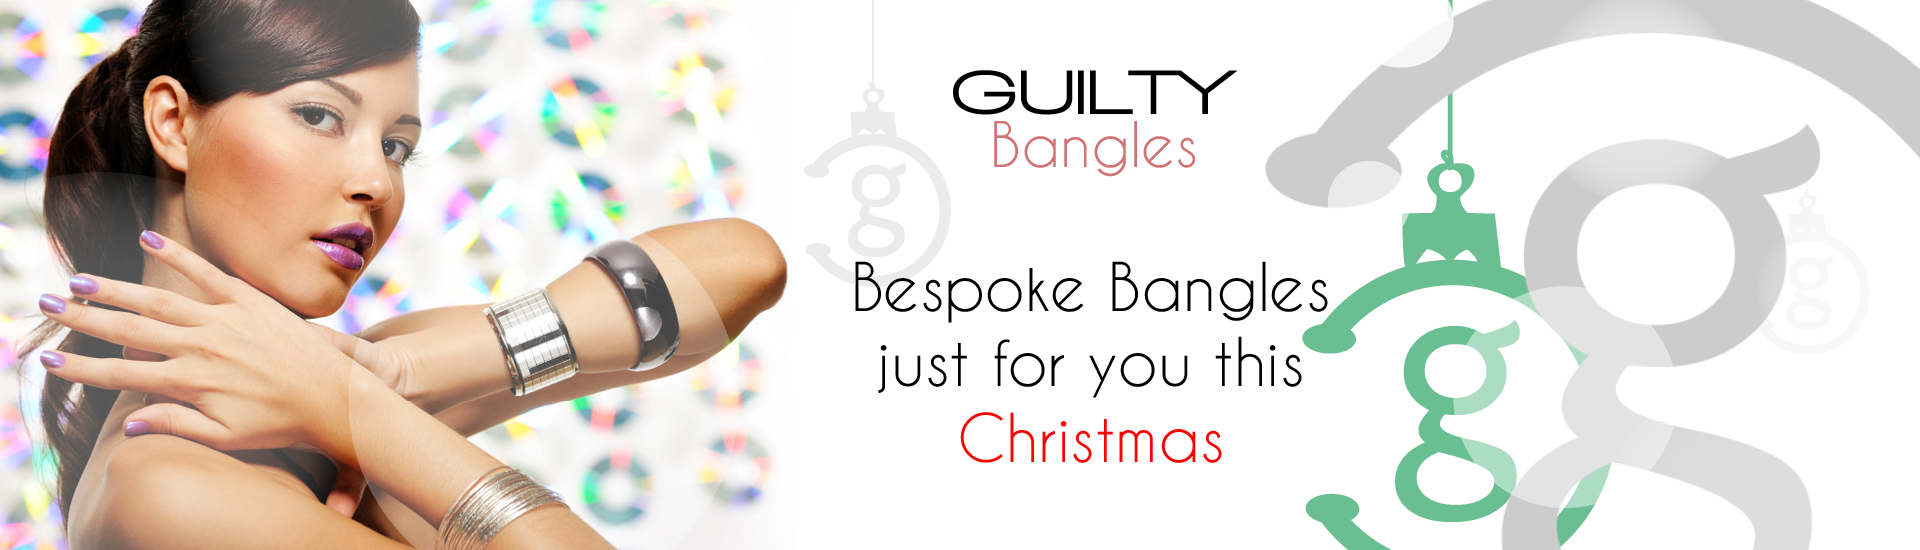 sterling silver ladies bangles for Christmas